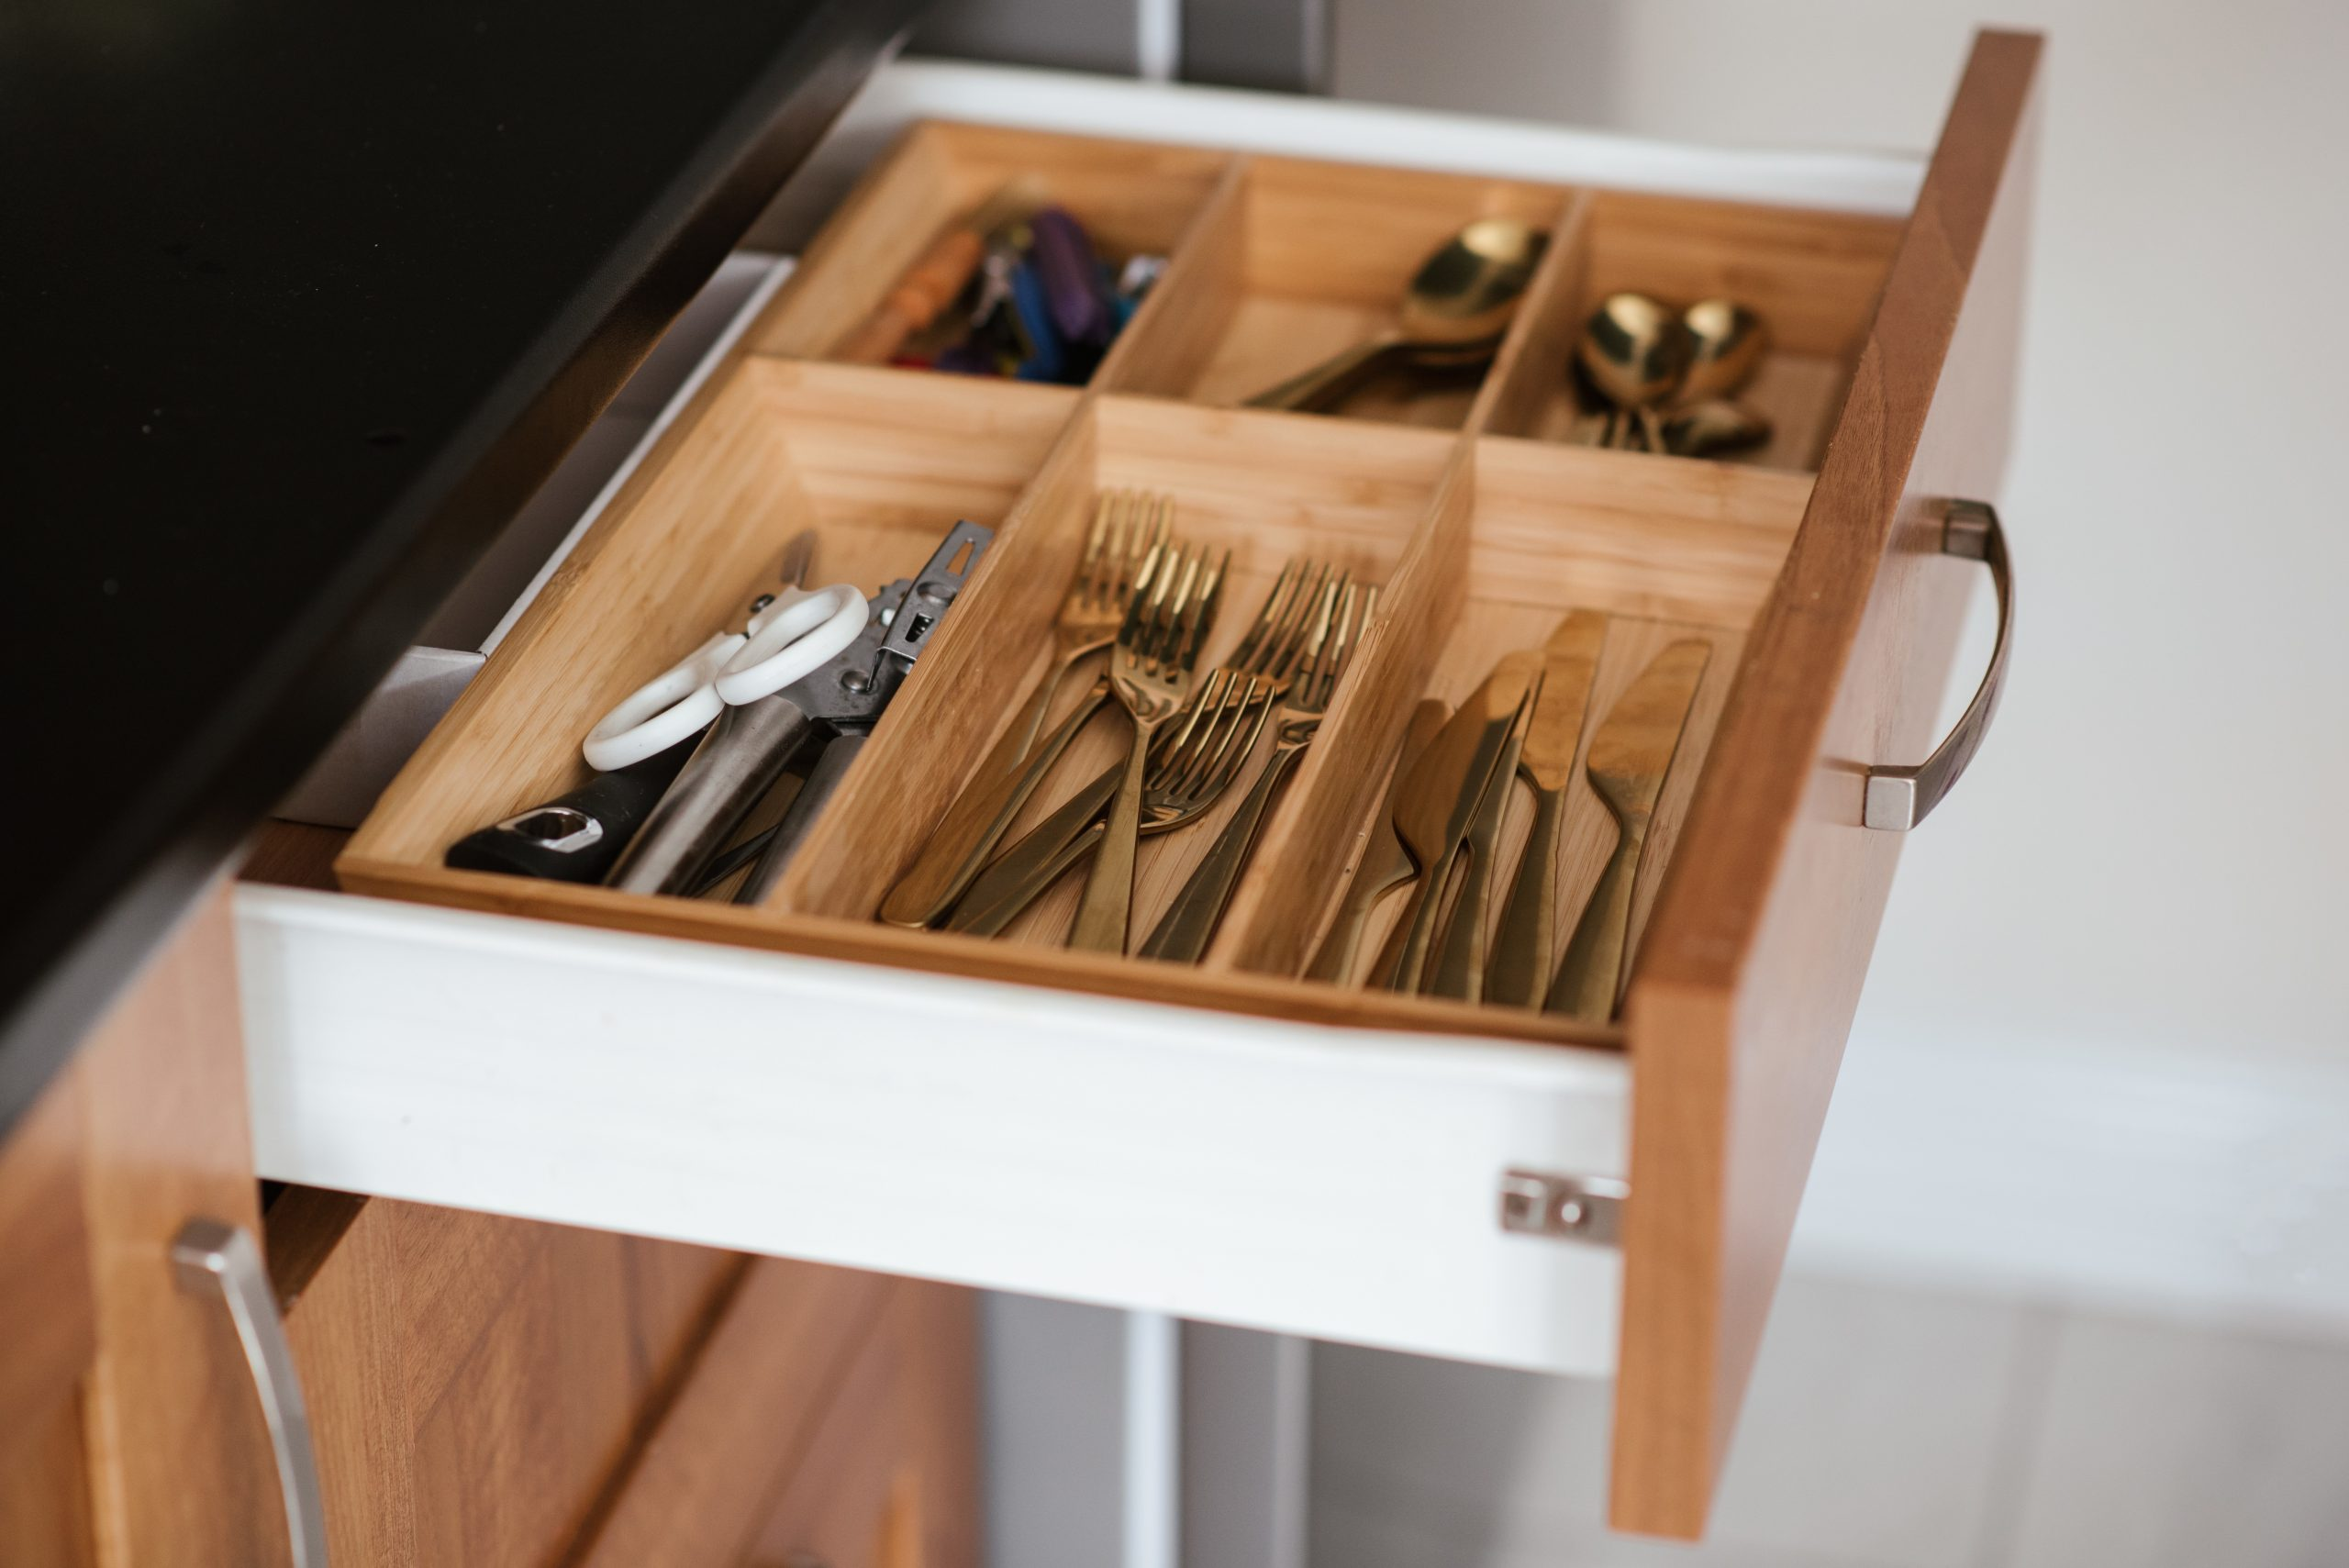 Different types of silverware in a drawer